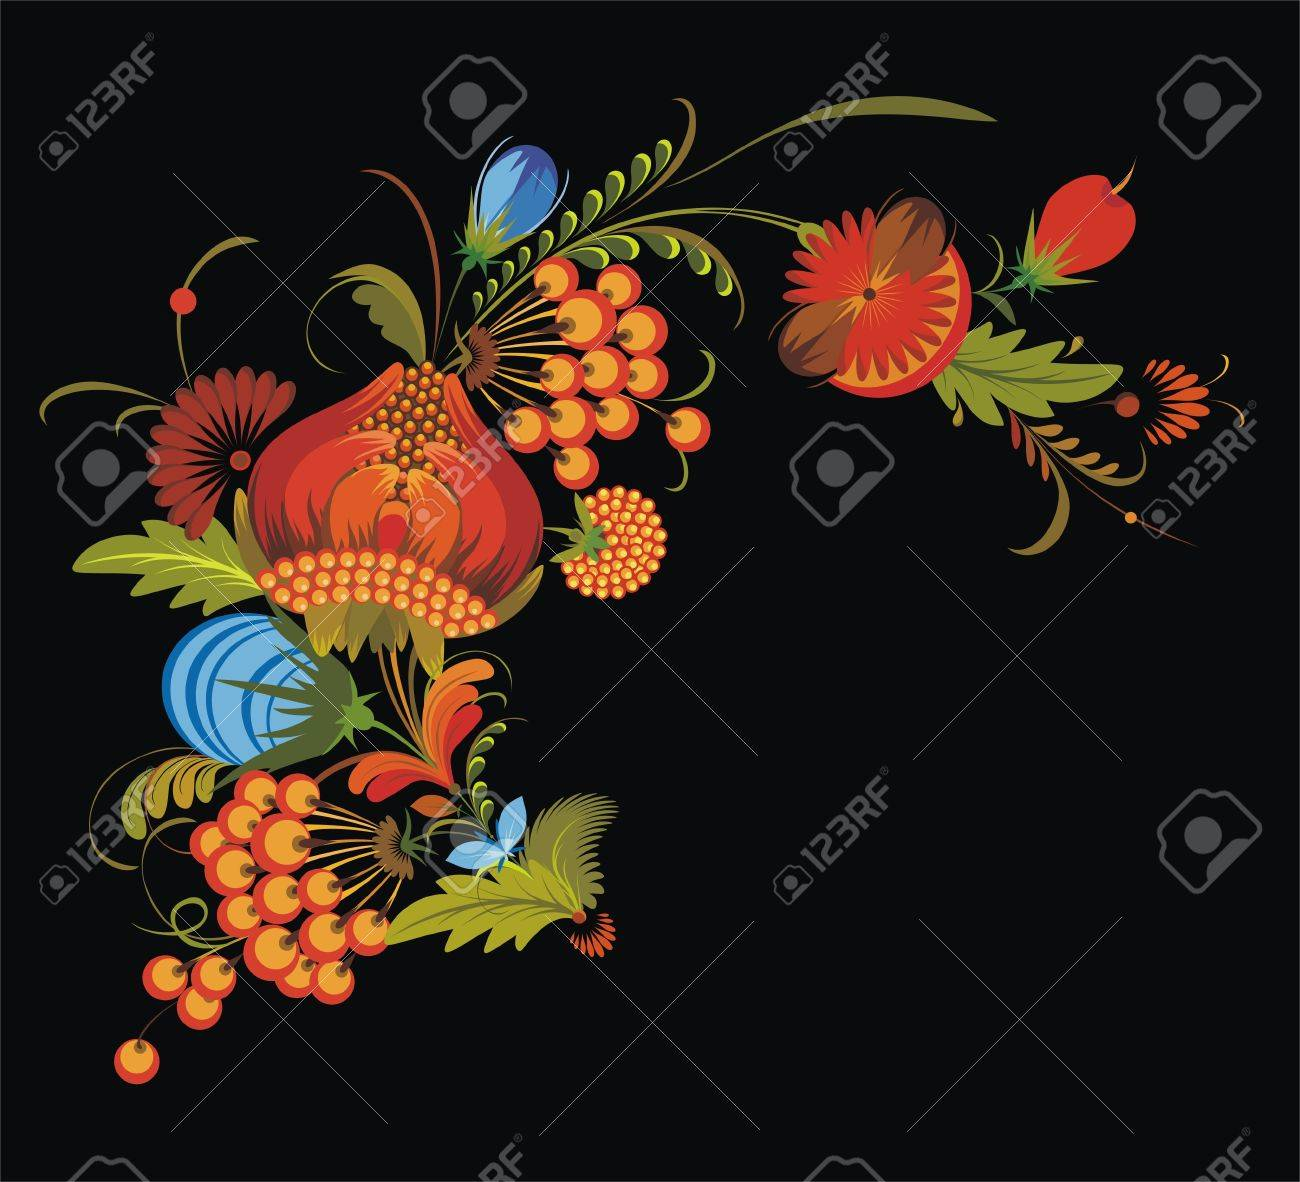 bunch of flowers on a black background Stock Vector - 9635651